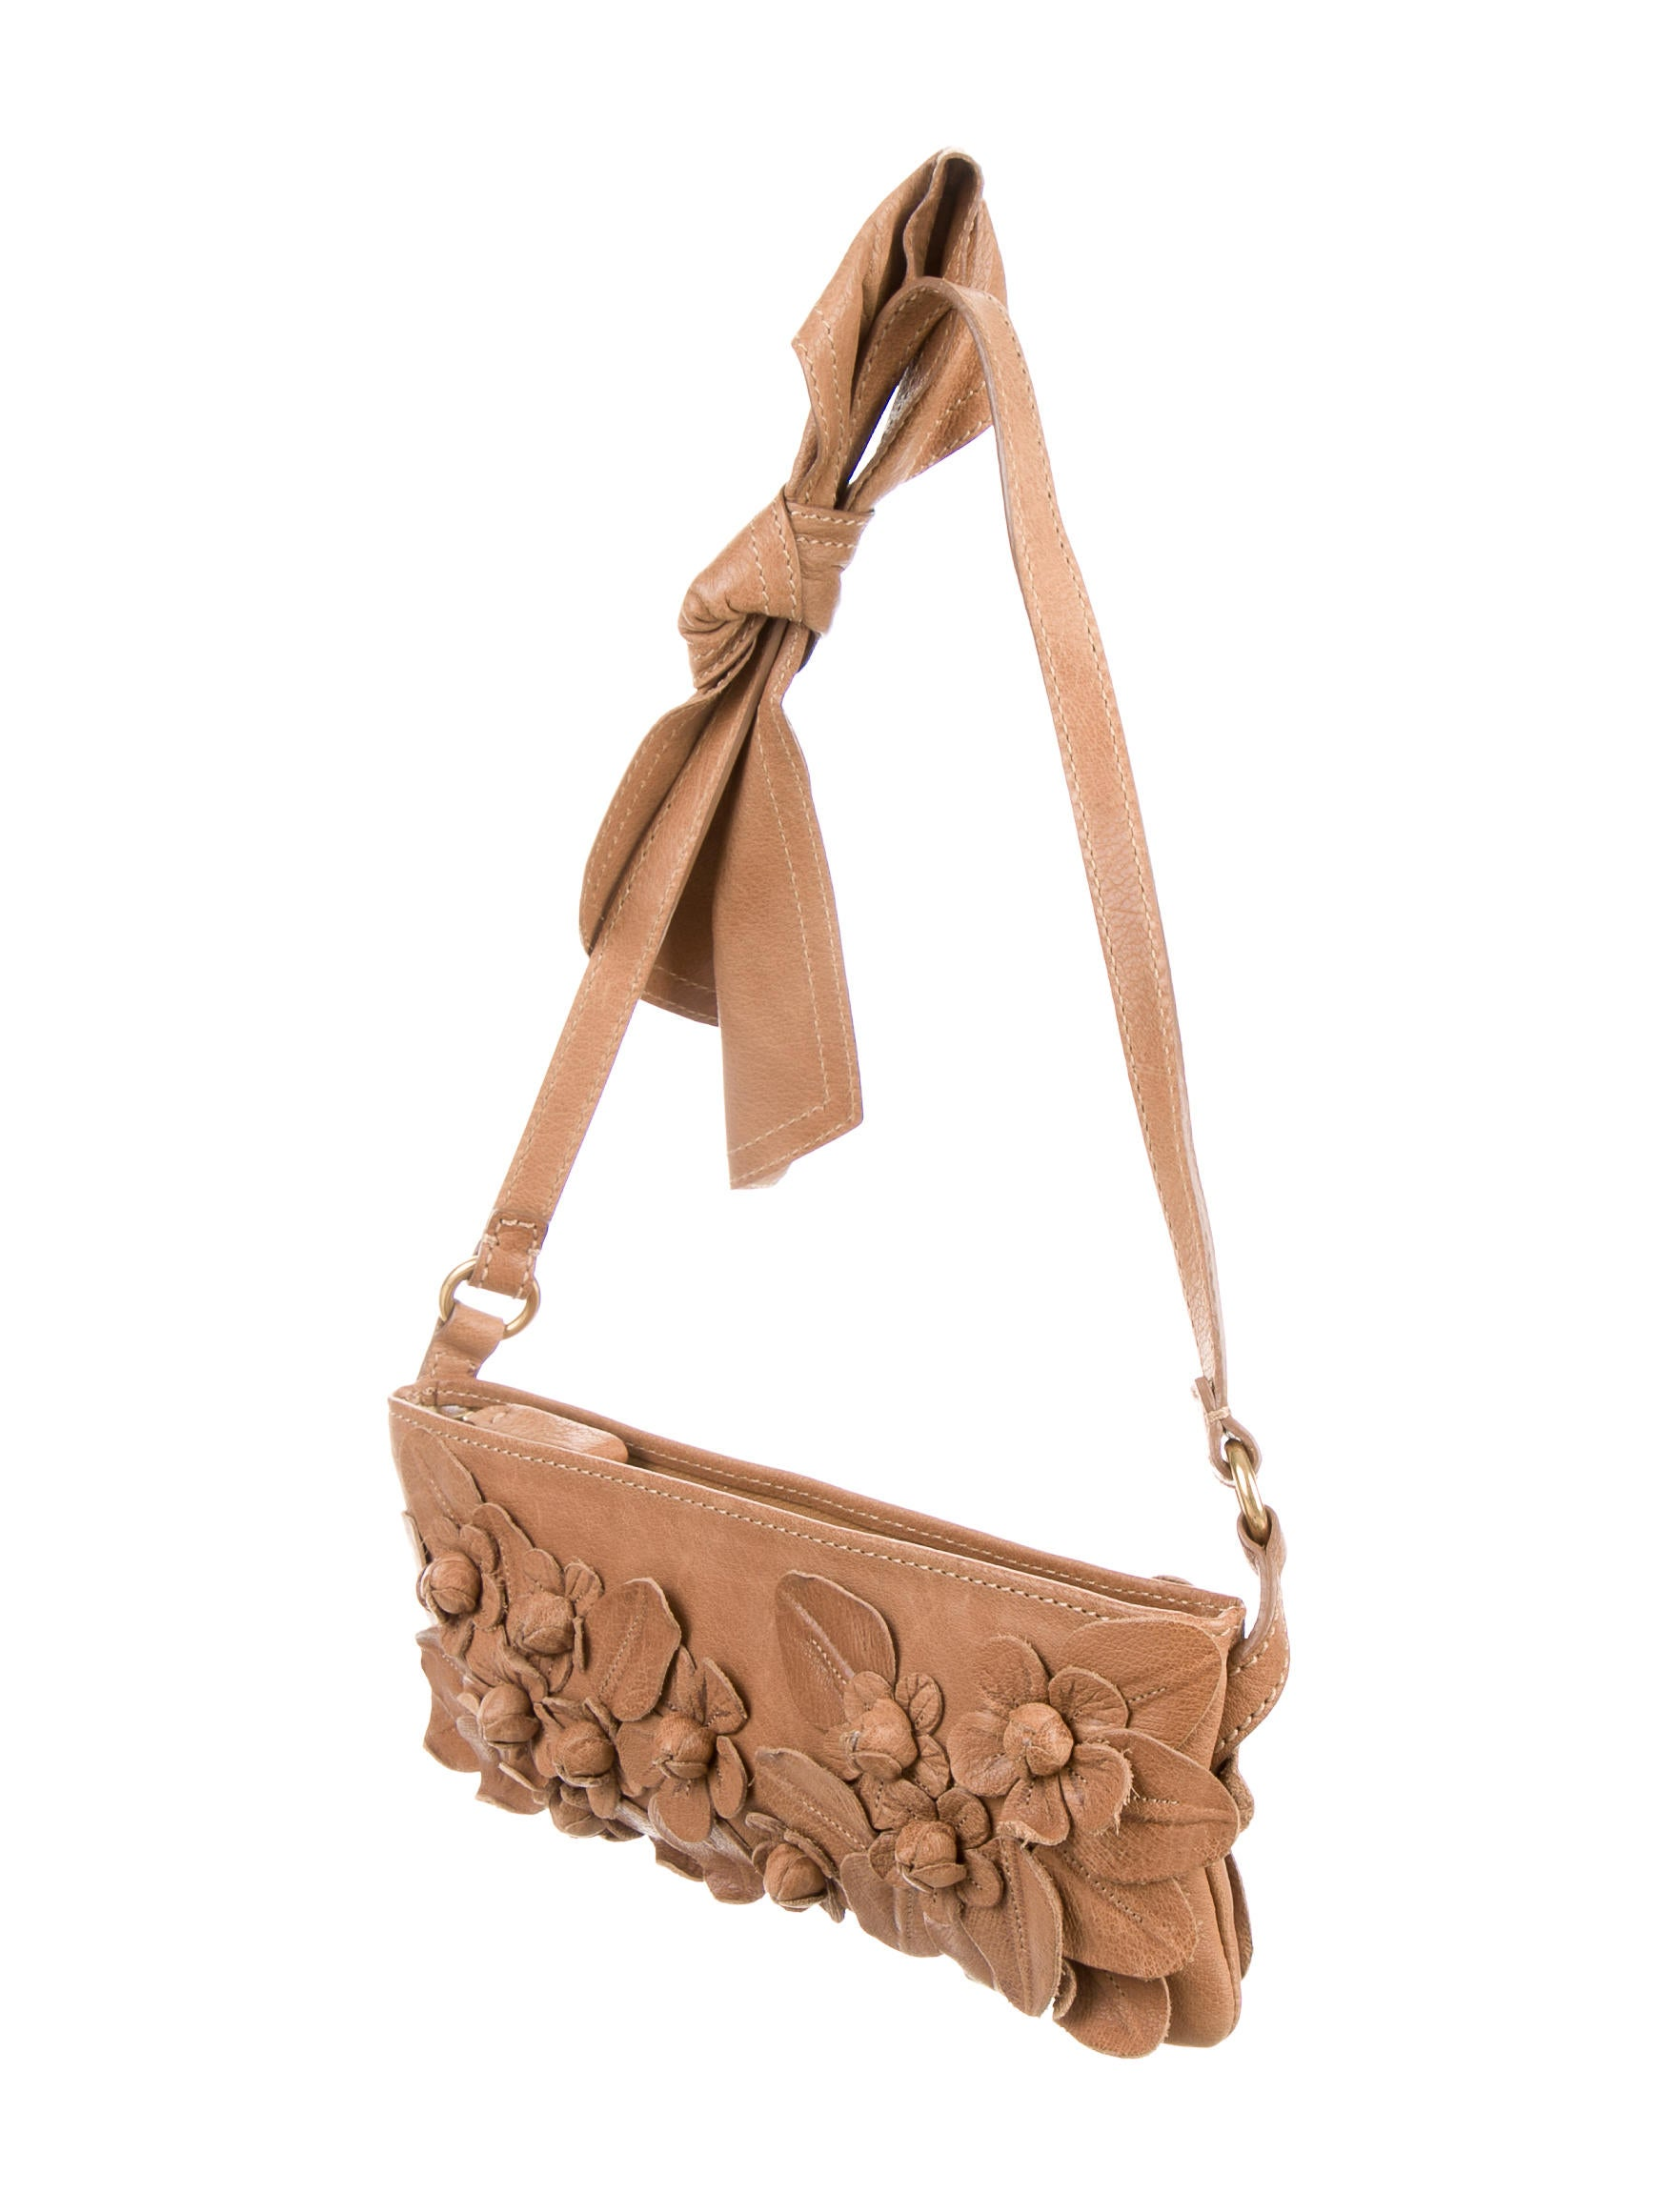 Valentino Floral-Appliquu00e9 Shoulder Bag - Handbags - VAL46616 | The RealReal